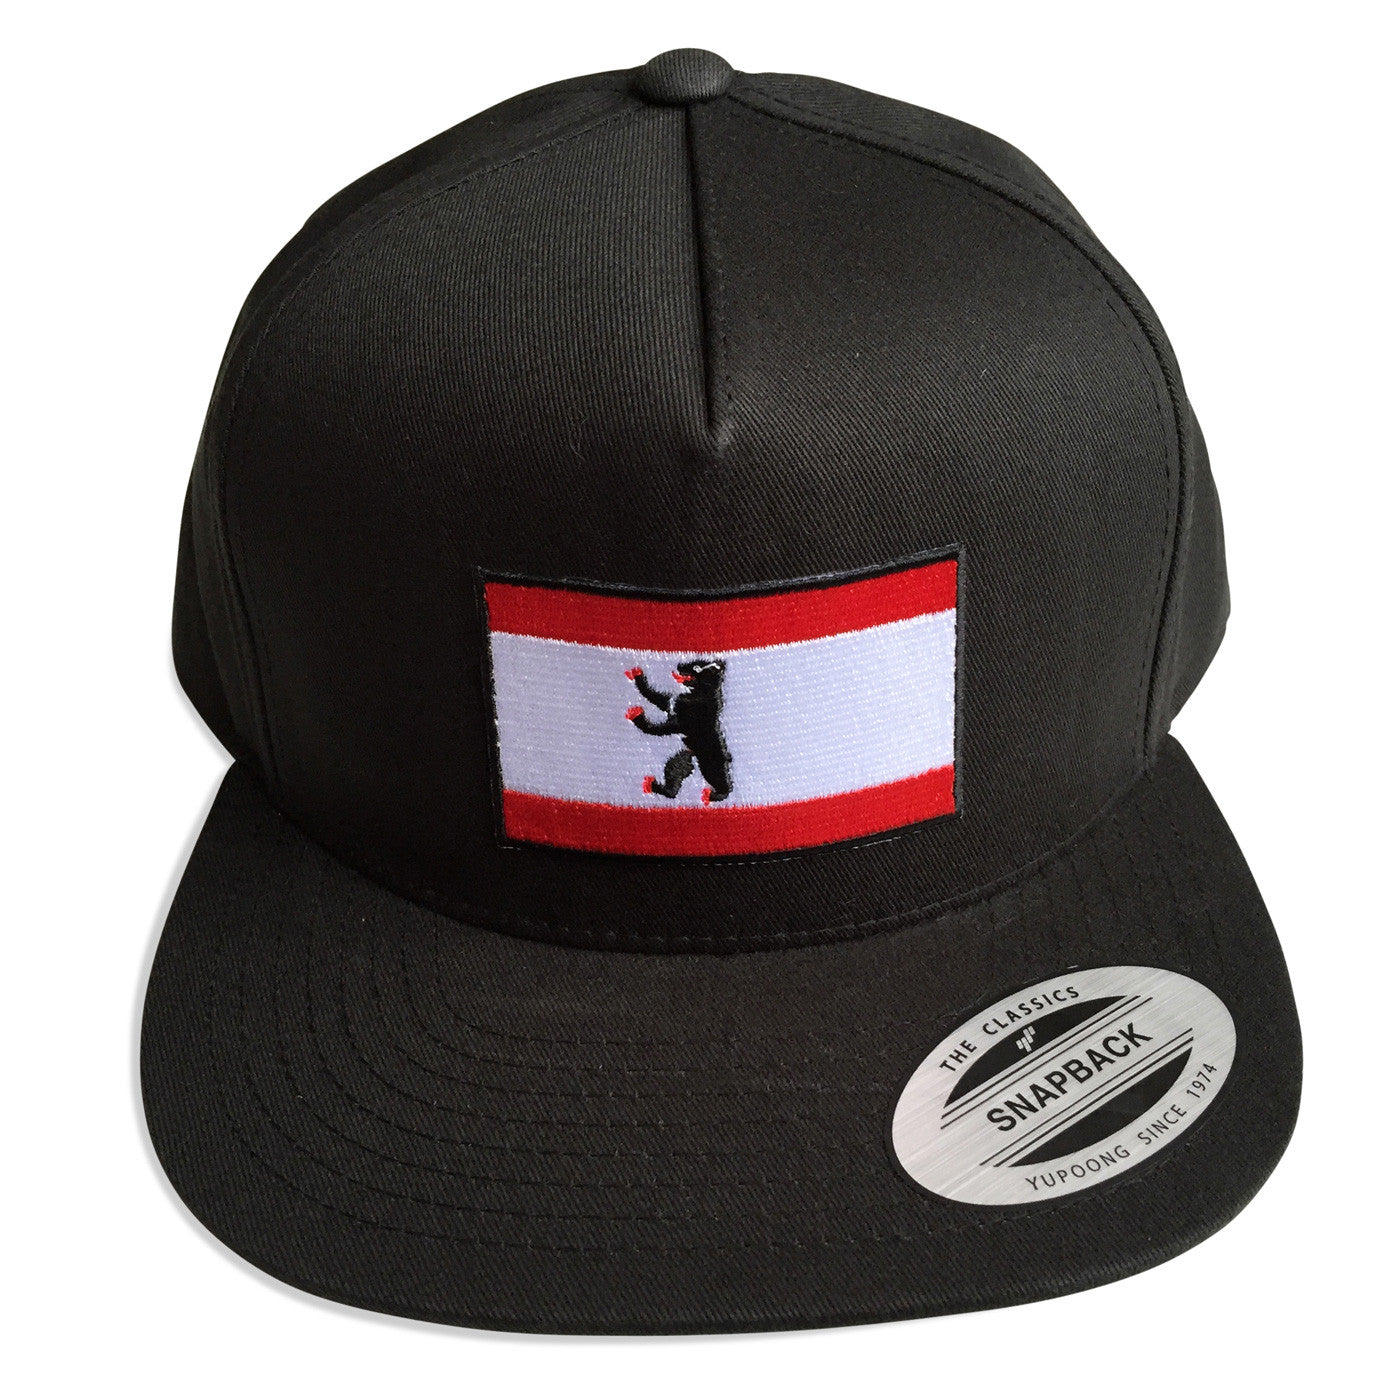 5216e86c582 Berlin City Flag Snapback Cap